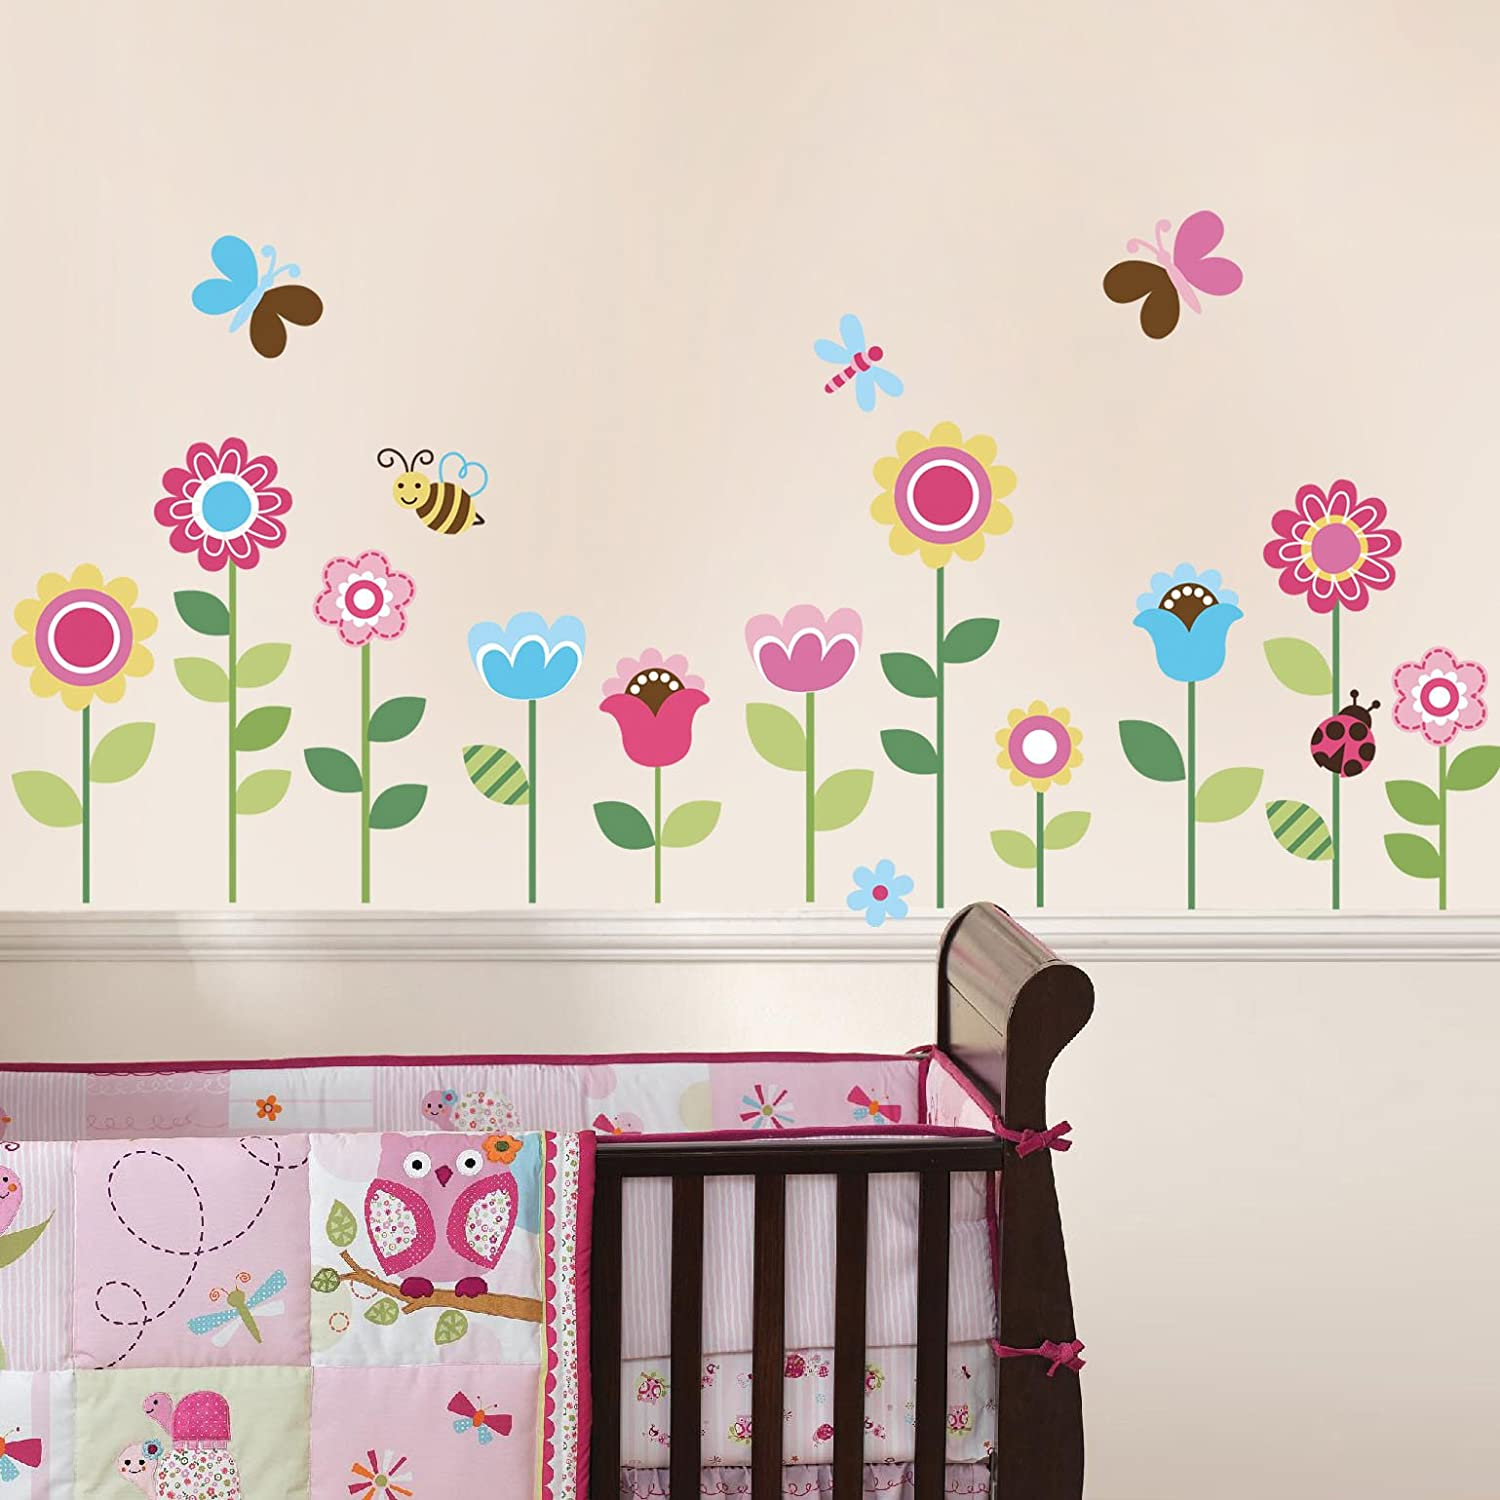 Amazoncom Garden Flowers Baby Nursery Peel Stick Wall Sticker - Wall decals nursery